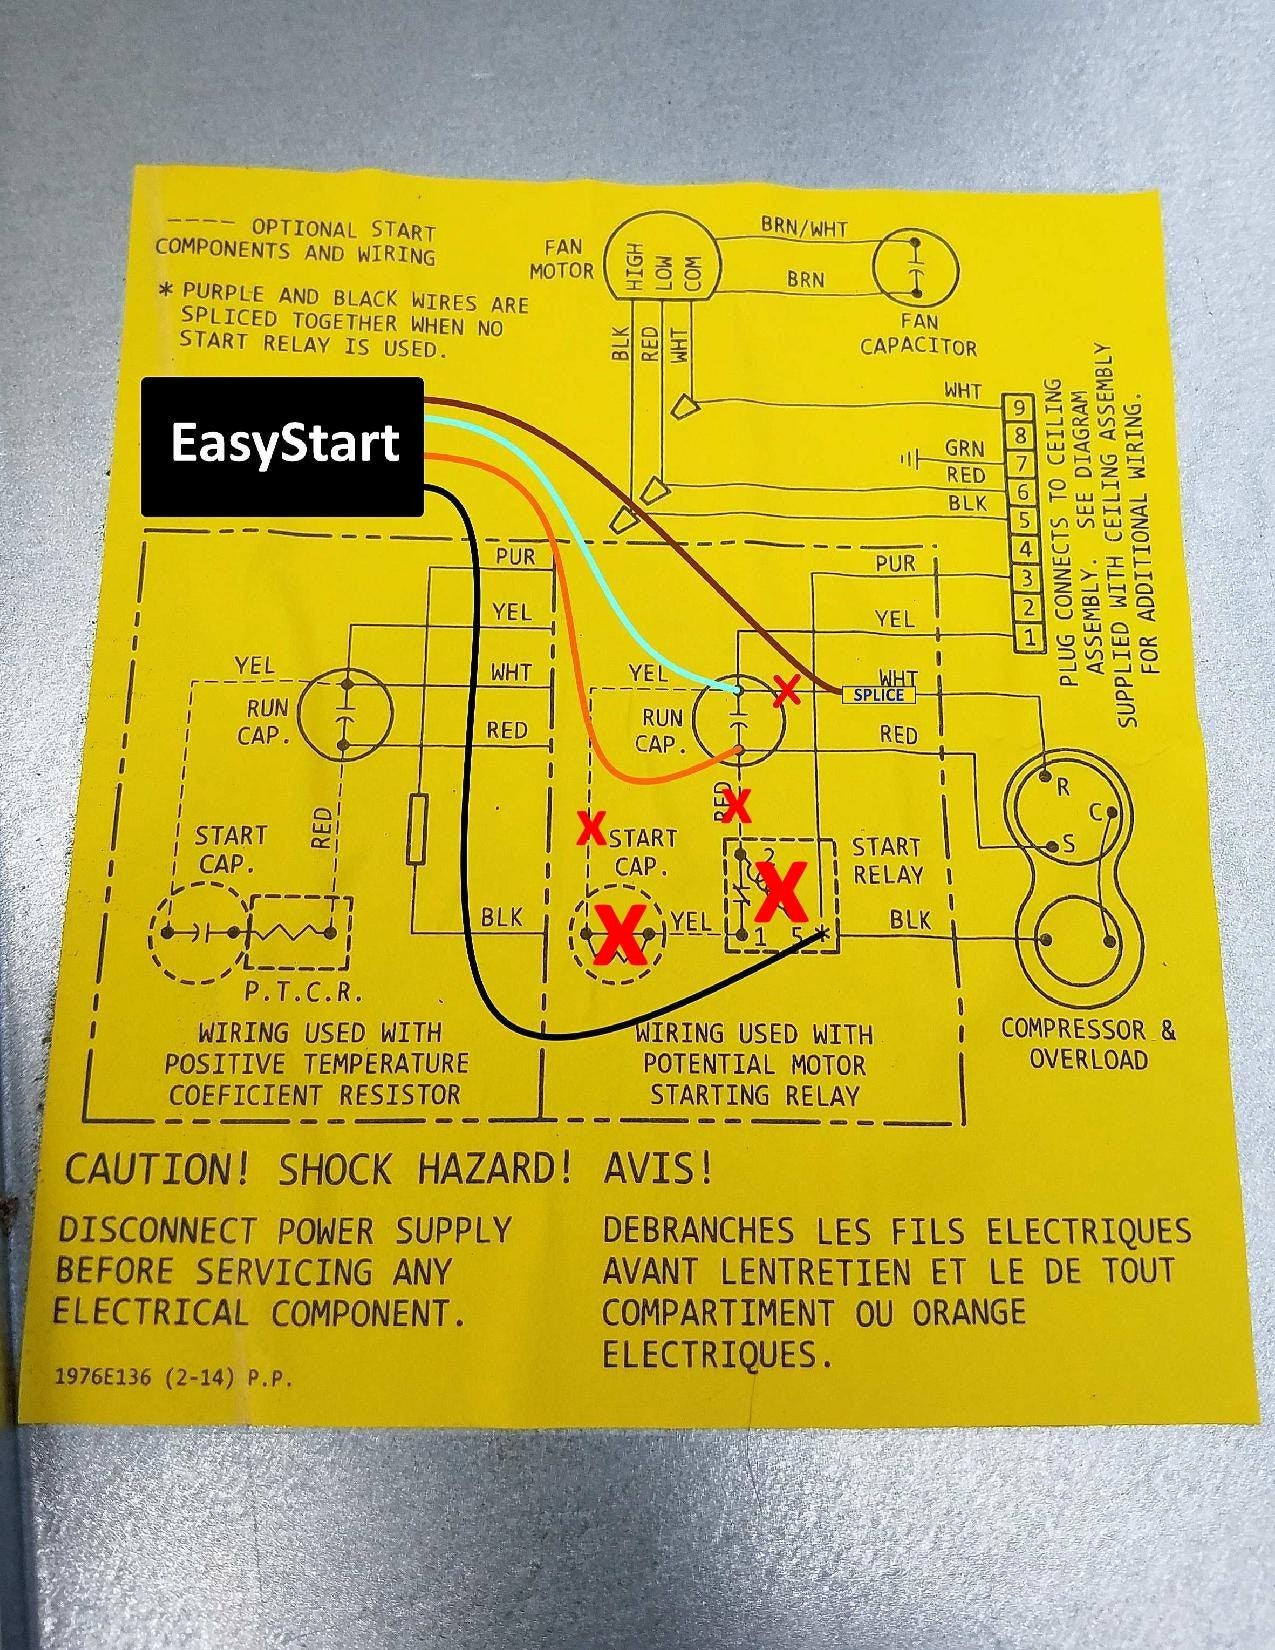 Coleman Starter Relay Wiring Diagram Wire Data Schema How To Rv Easystart Soft Diagrams Resource Page Micro Air Rh Microair Net Solenoid Chevy